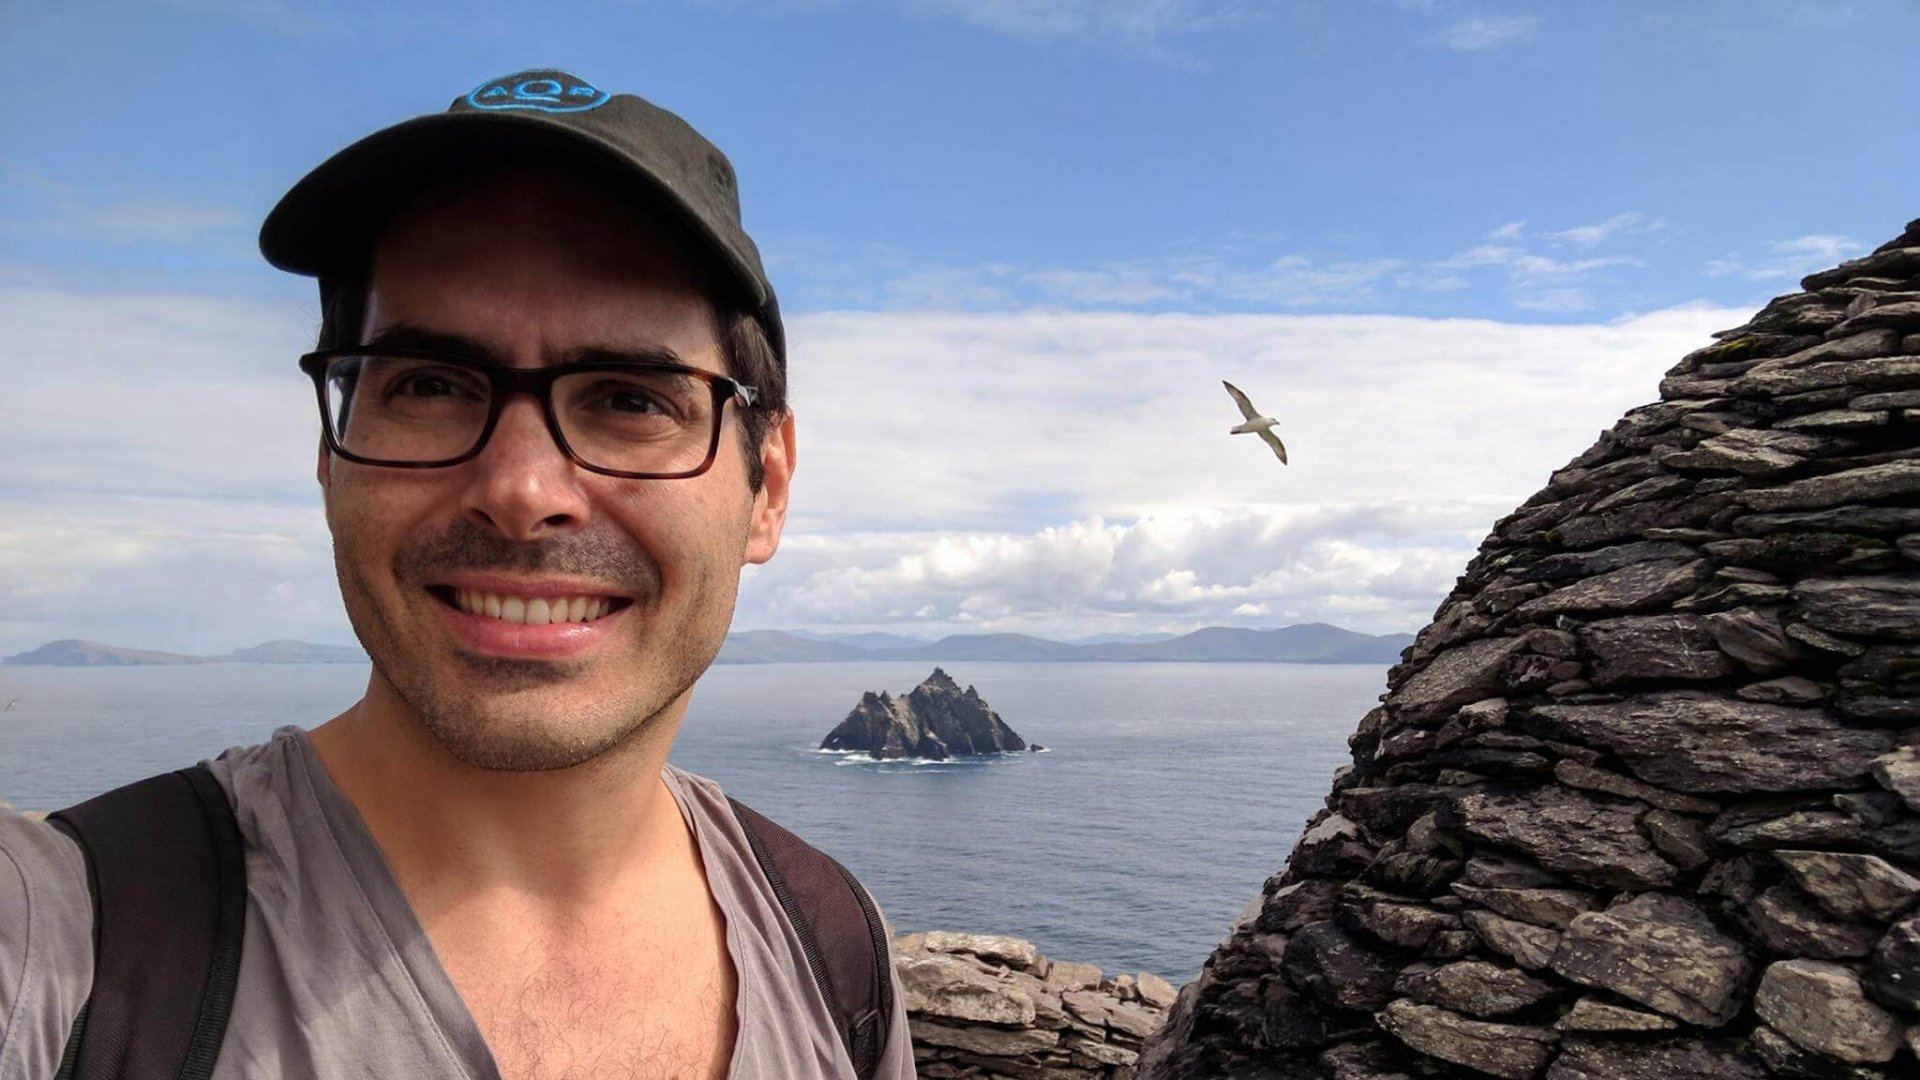 Vagabond guest Balint Pato takes a quick selfie (with passing seagull) at the beehive huts on top of Skellig Michael, with Little Skellig in the background